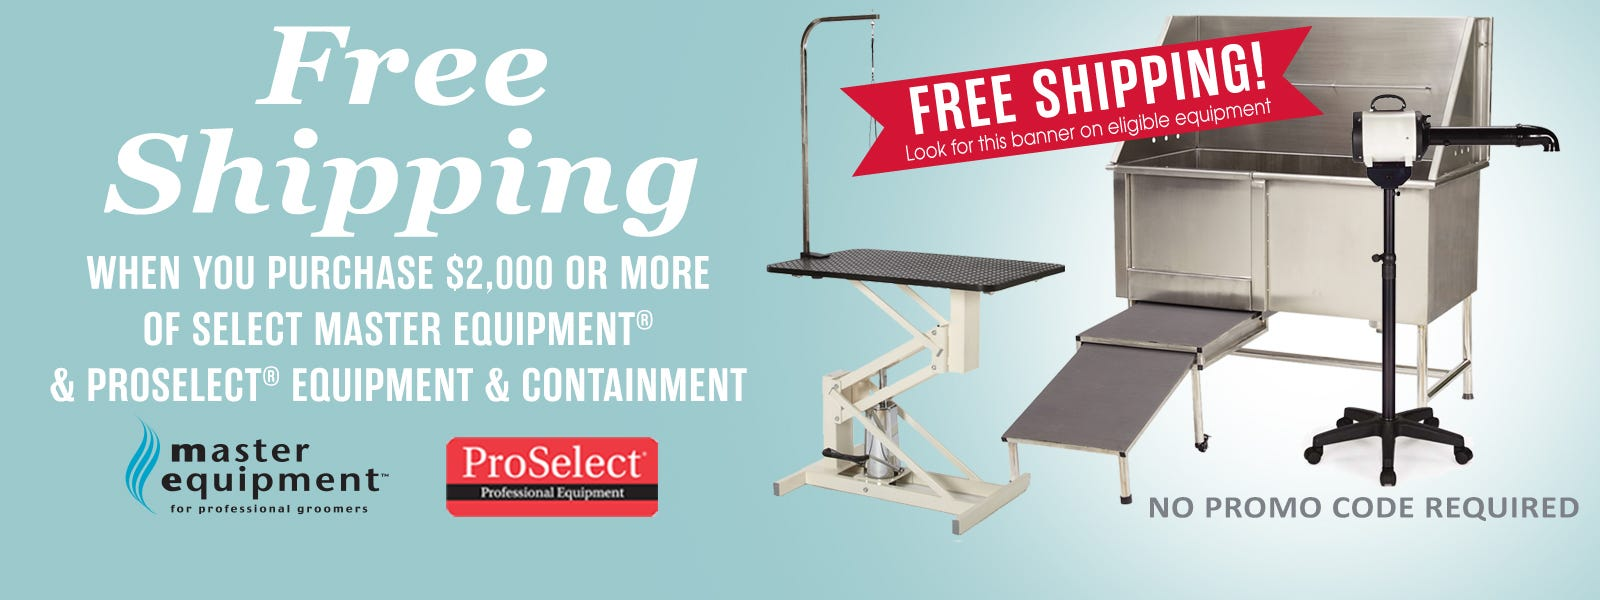 Limited time only - get free shipping on select equipment totaling $2,000 or more.